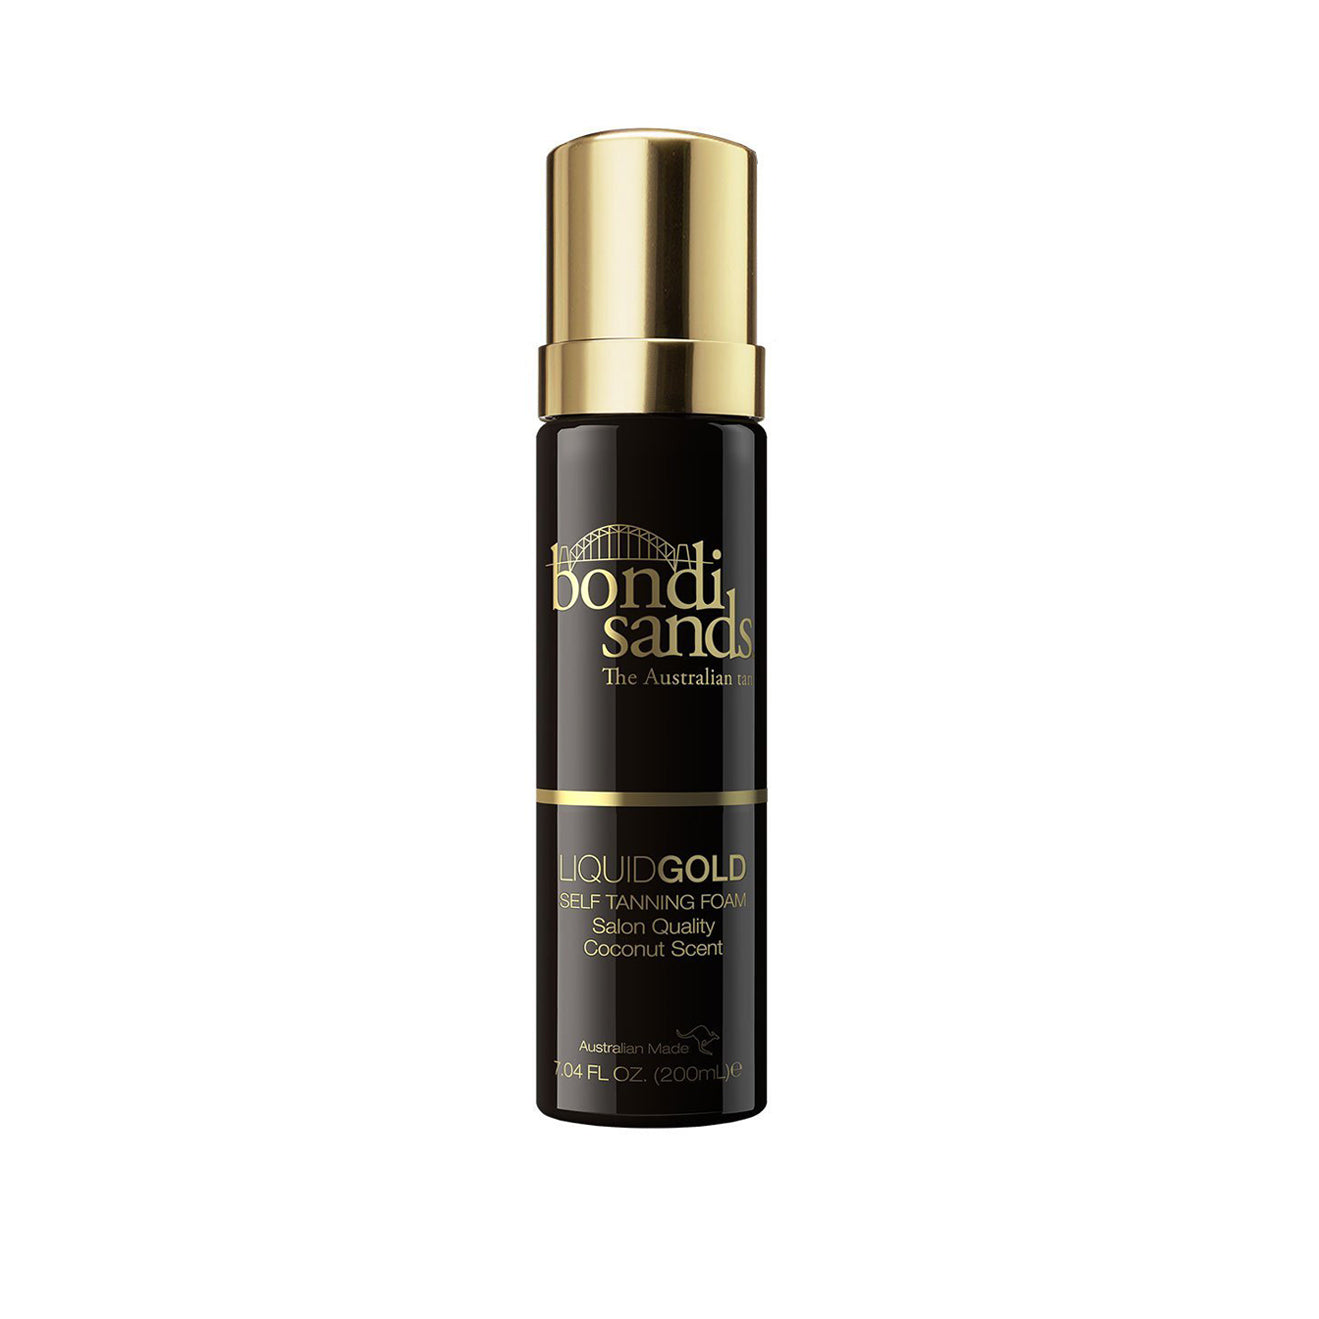 Bondi Sands Liquid Gold Foam 200ml